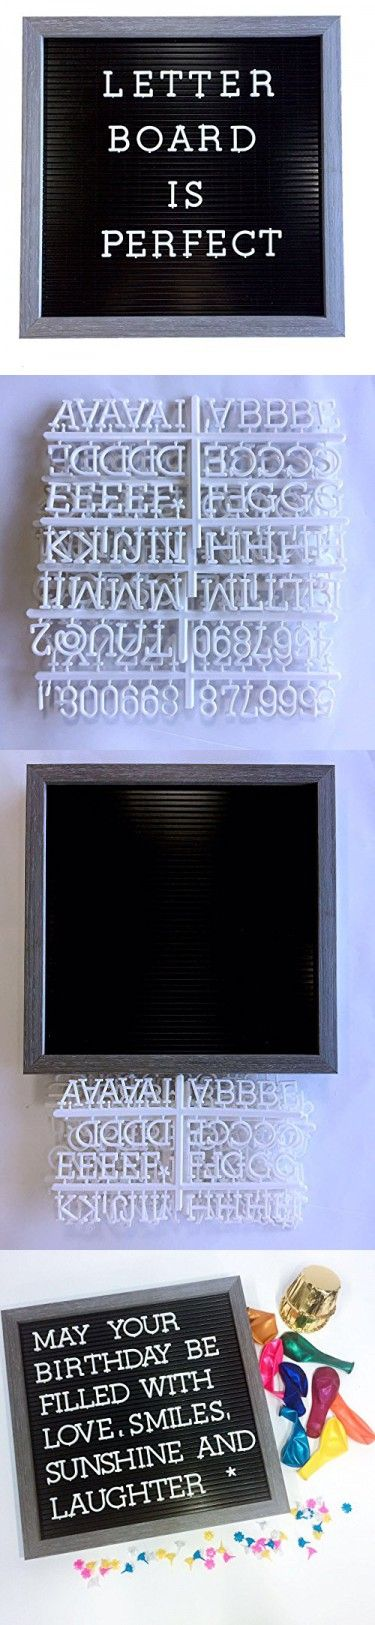 Plastic Letter Board with 1 Inch Letters - 188 Characters Include Plastic Letters, Numbers & Symbols, Changeable Letter Boards By Atoz Create, Message Board Sign, Black & White & Grey, 12x12 Inch